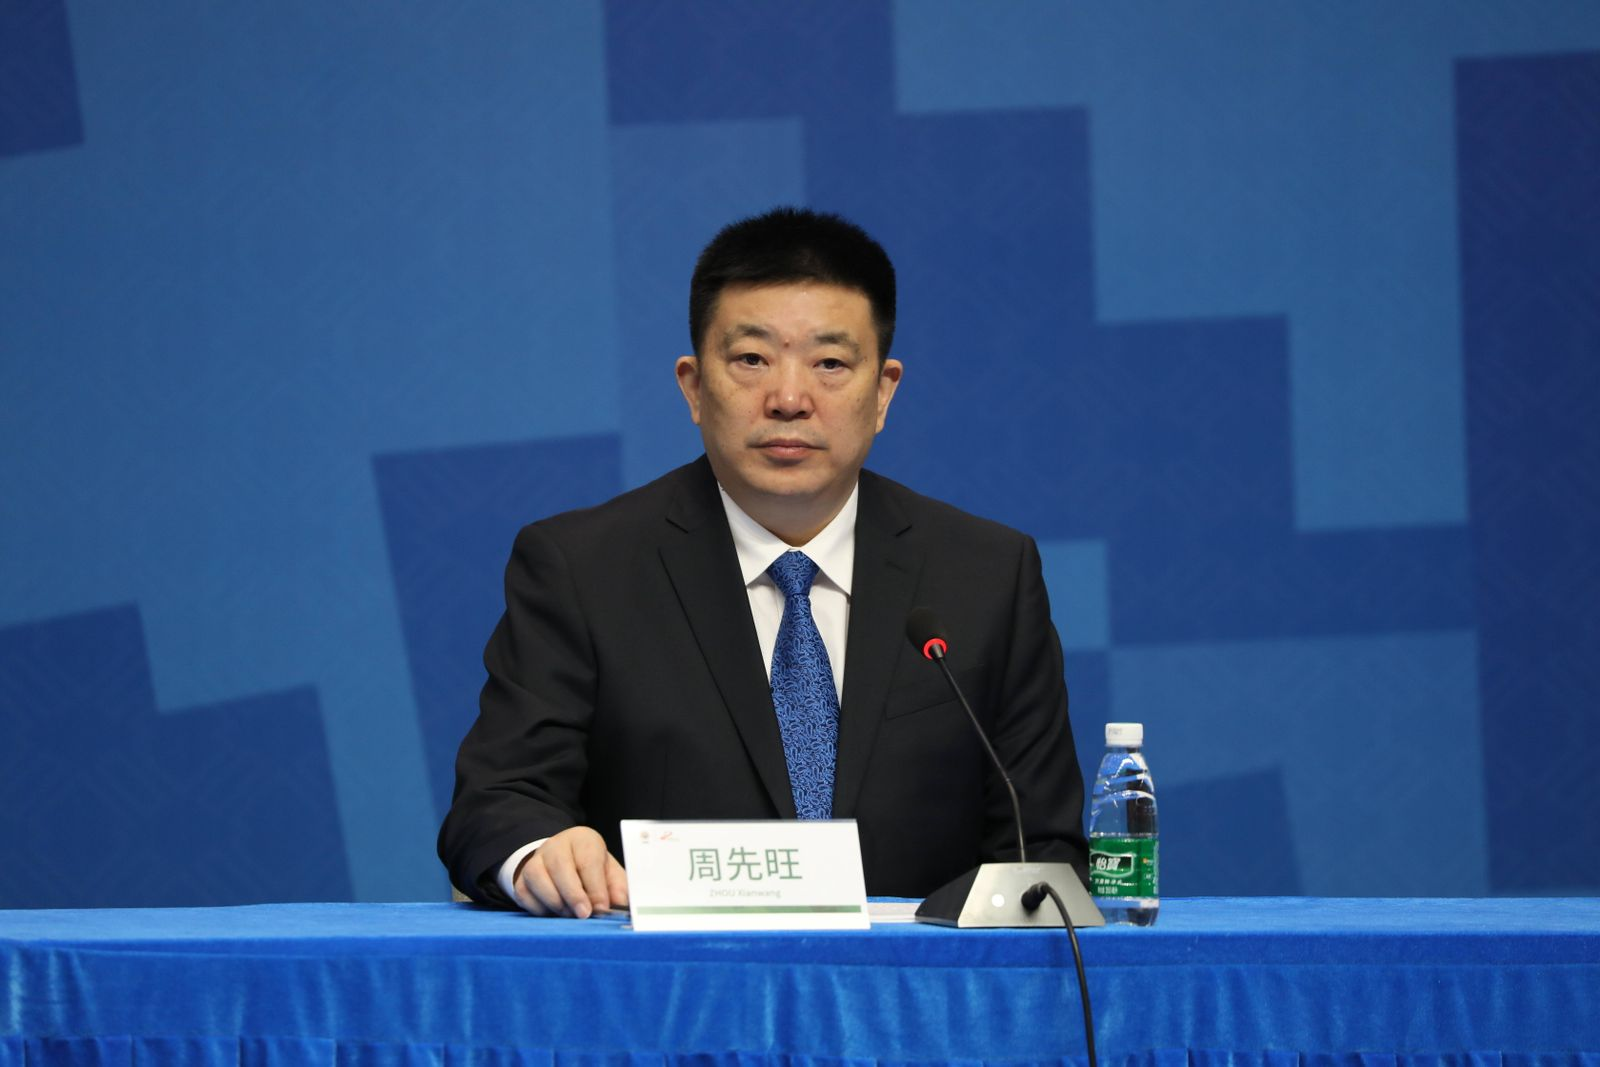 WUHAN, CHINA - OCTOBER 17: Zhou Xianwang, mayor of Wuhan, attends a press conference marking one-day countdown of the 7t